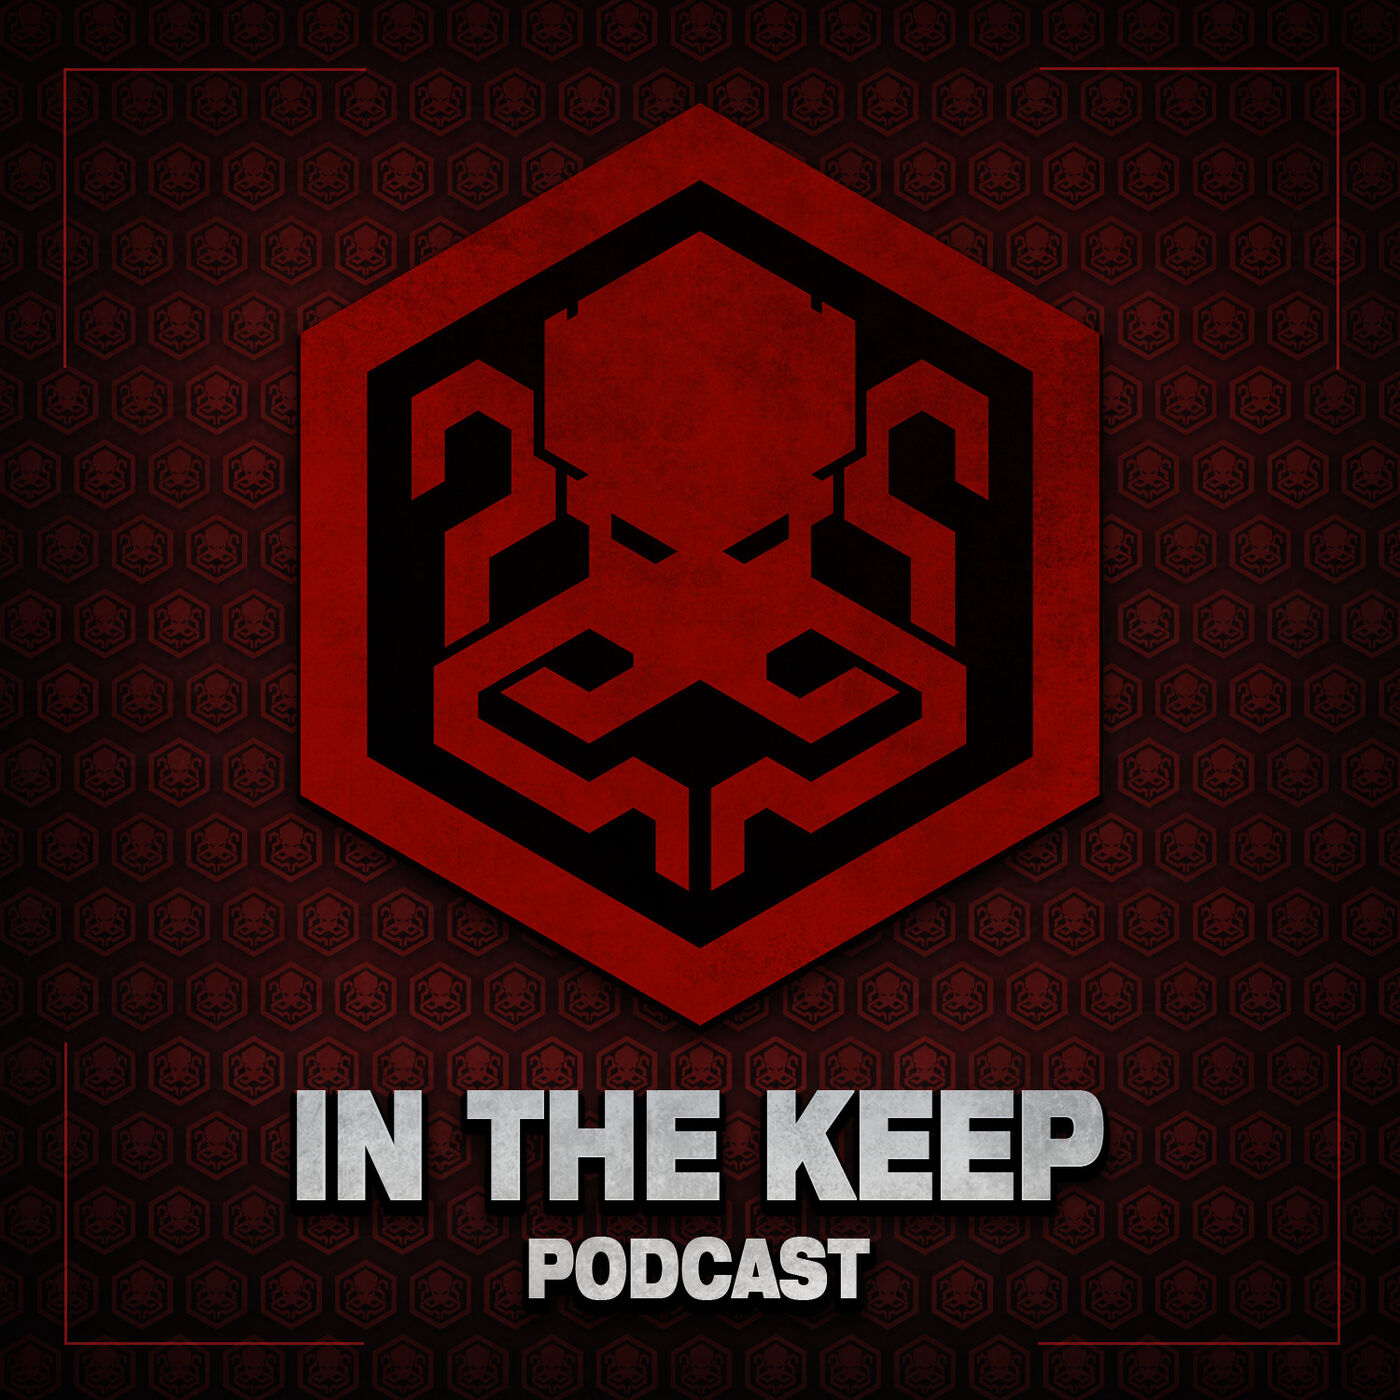 Artwork for podcast In The Keep